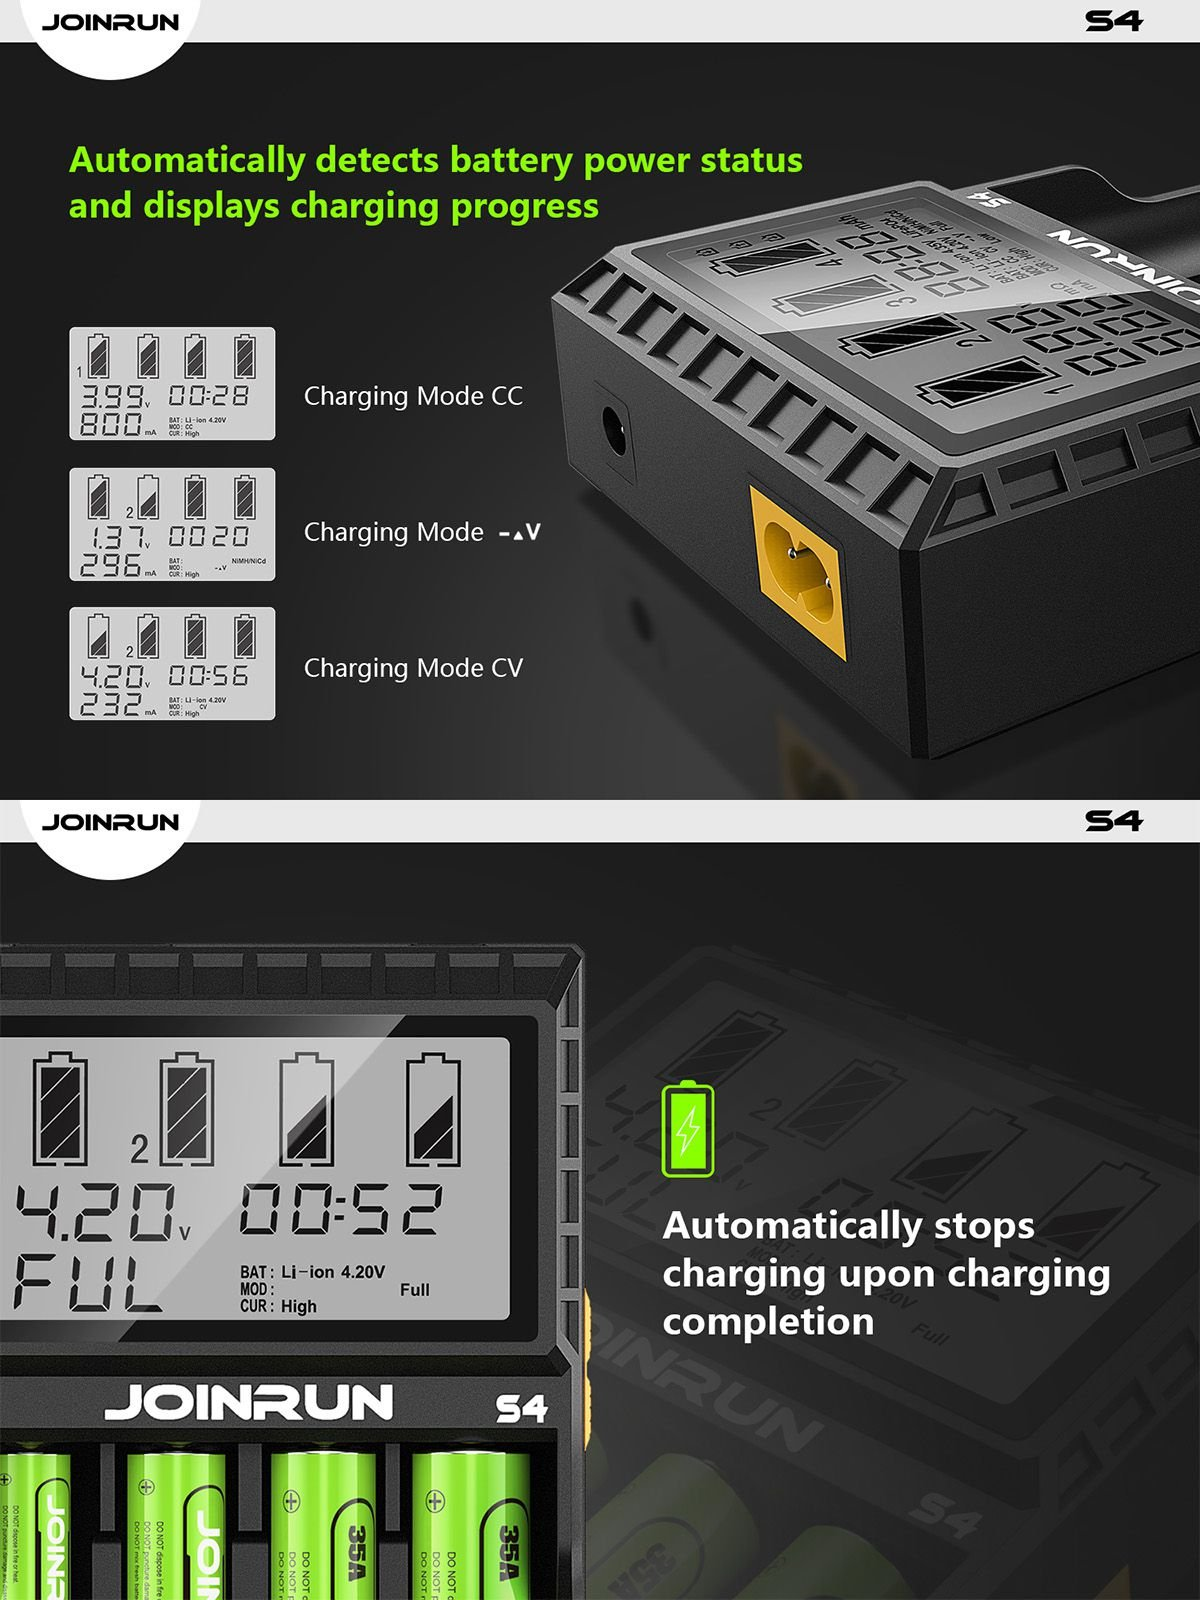 4-Slots LCD Display Universal Battery Charger for 3.7V Li-ion 10440 14500 14650 16340 17670 18500 18650 18700 22650 20700 21700 22700 25500 26650 26700 Batteries